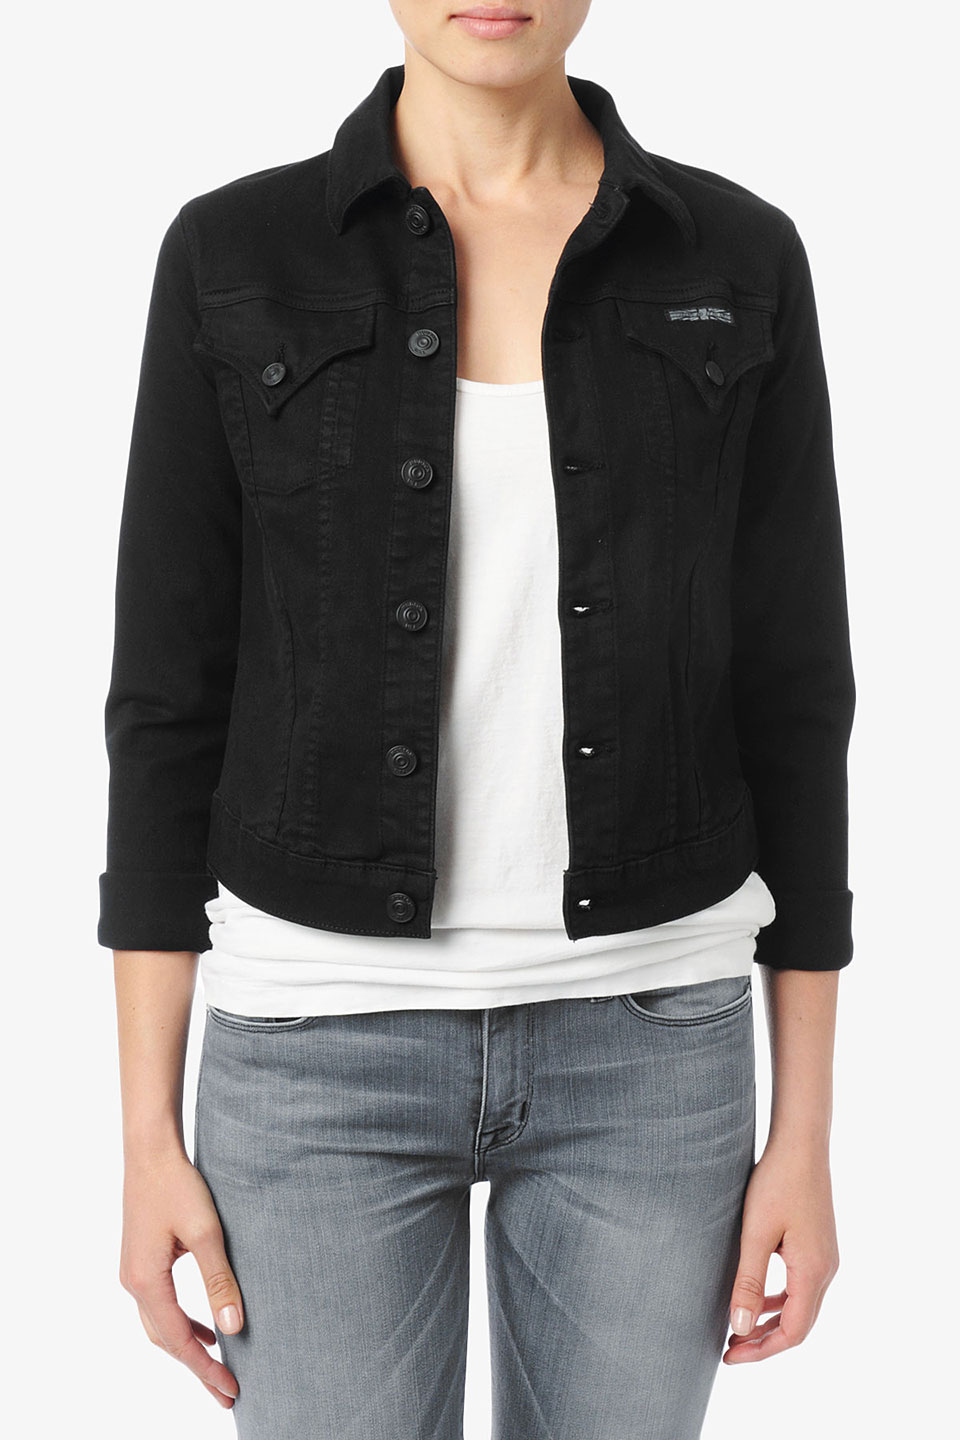 Buy womens black denim jacket – Modern fashion jacket photo blog